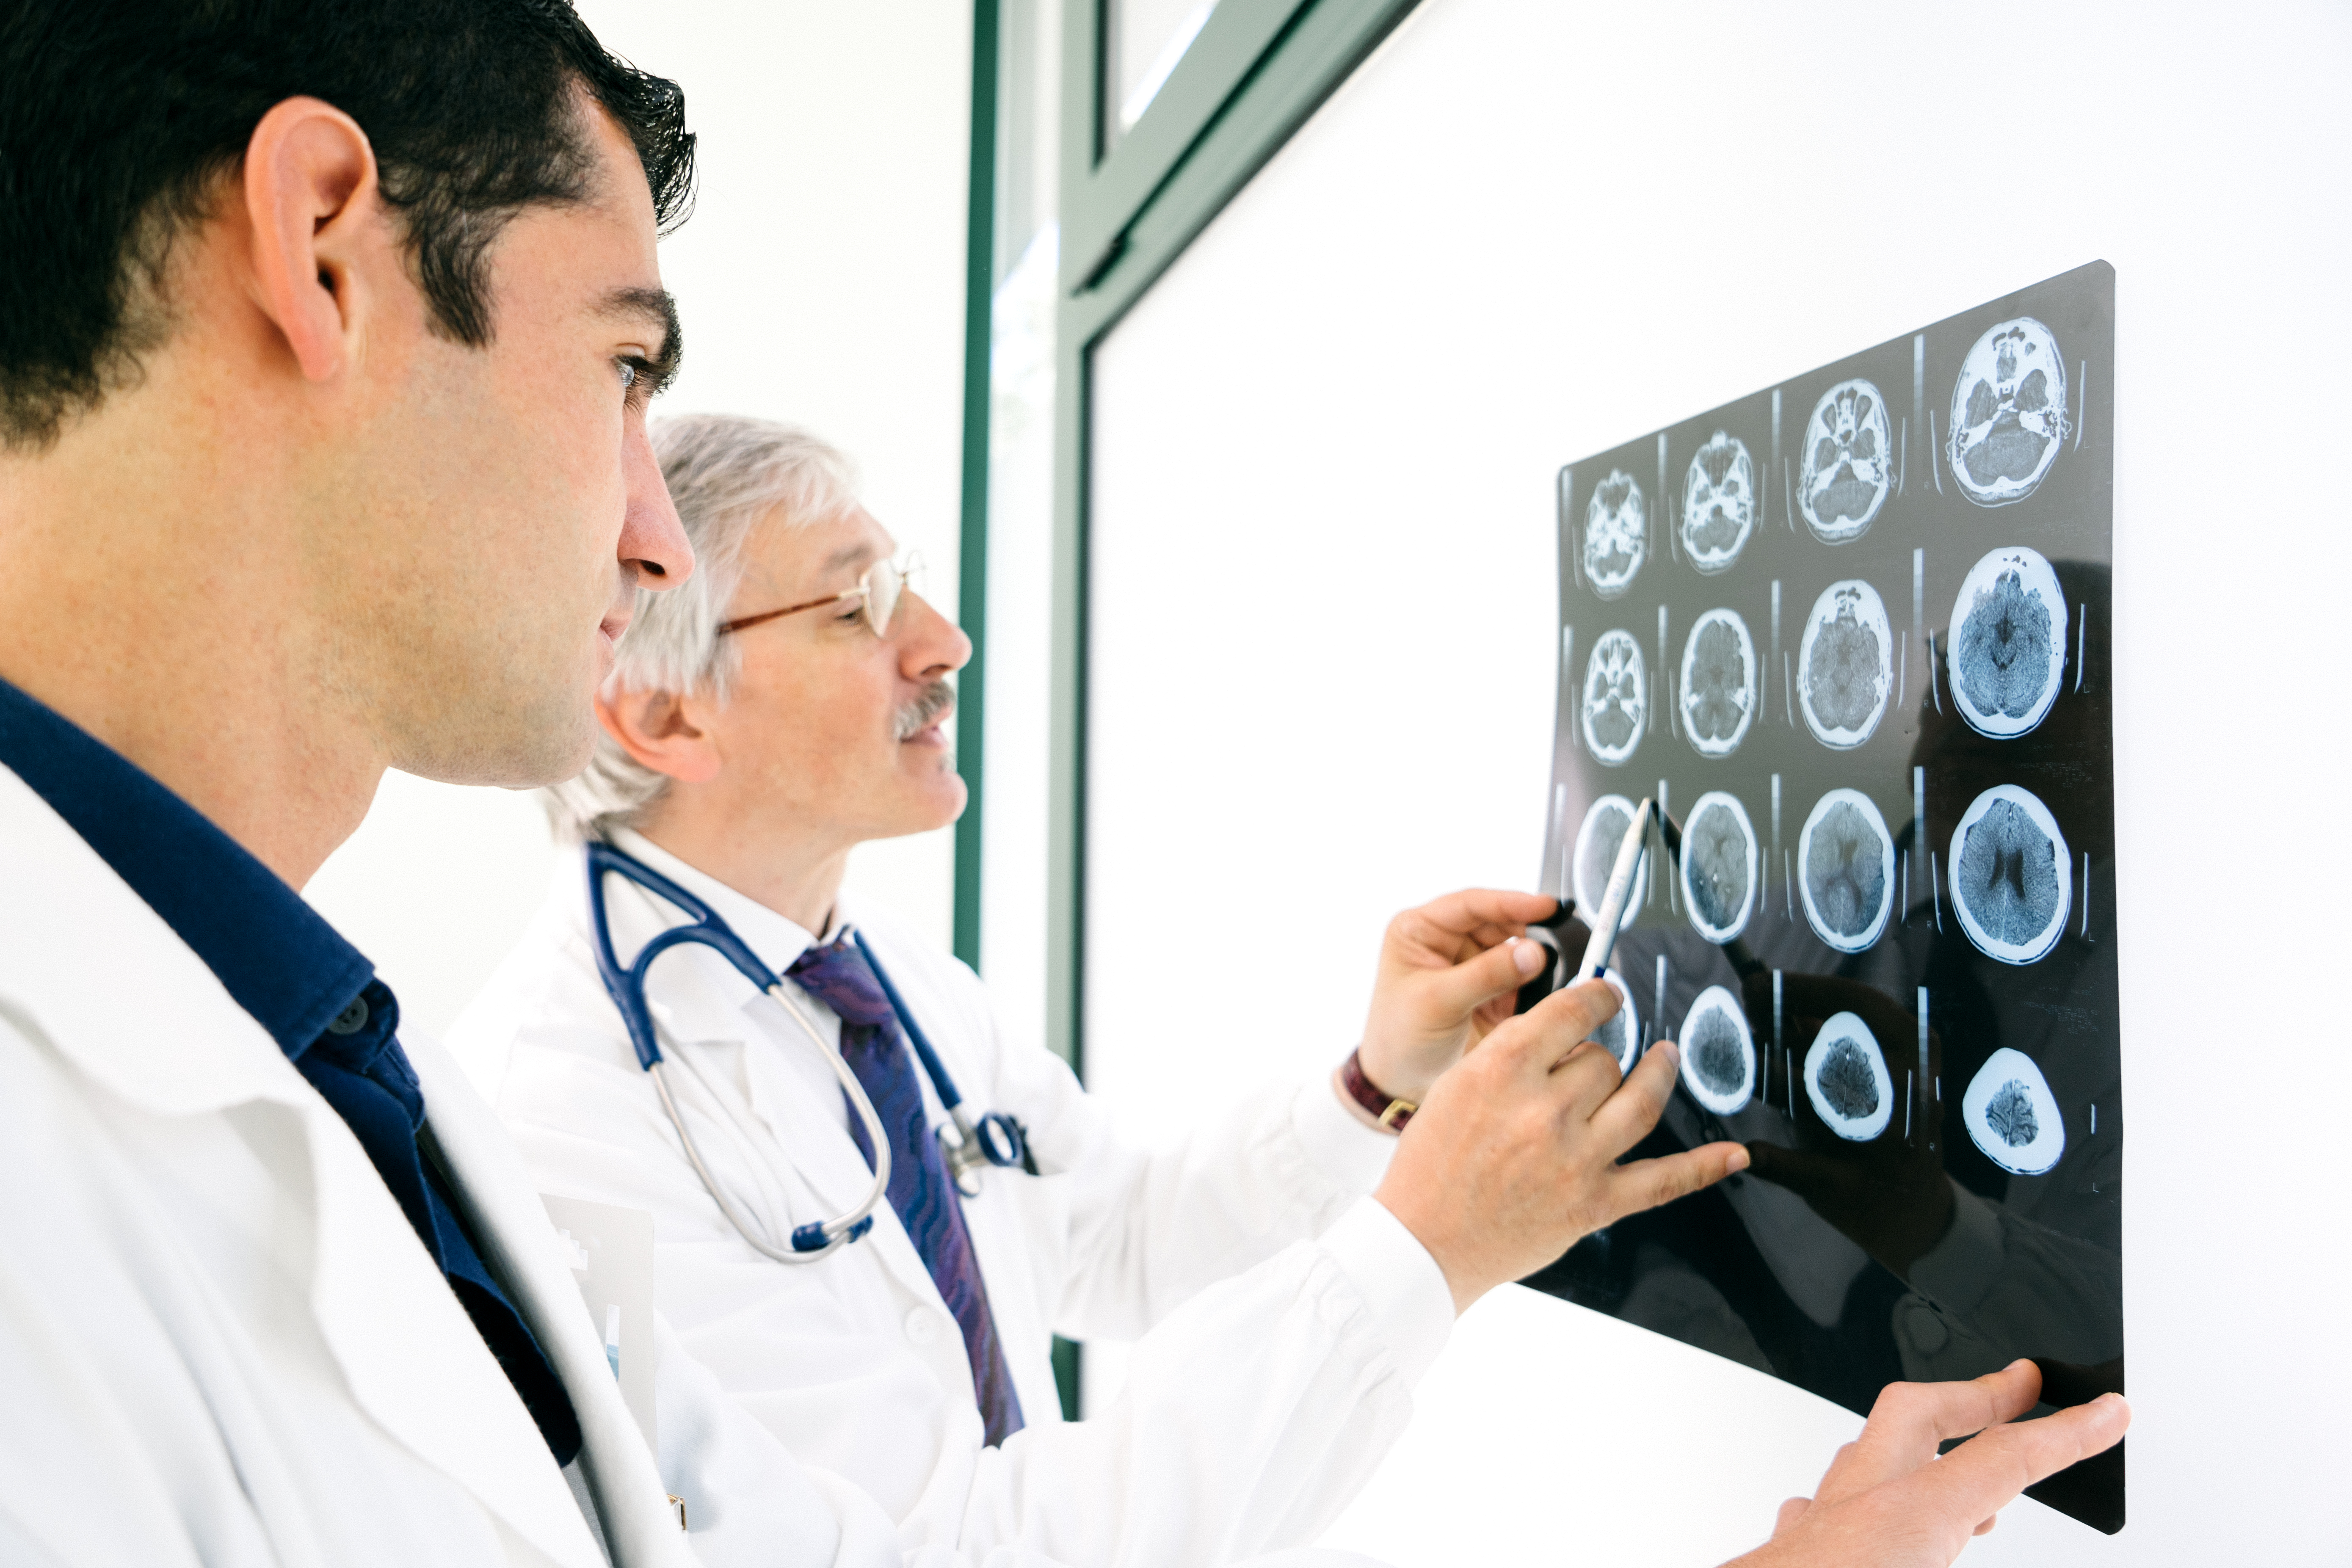 Doctors consult over an MRI scan of the brain.